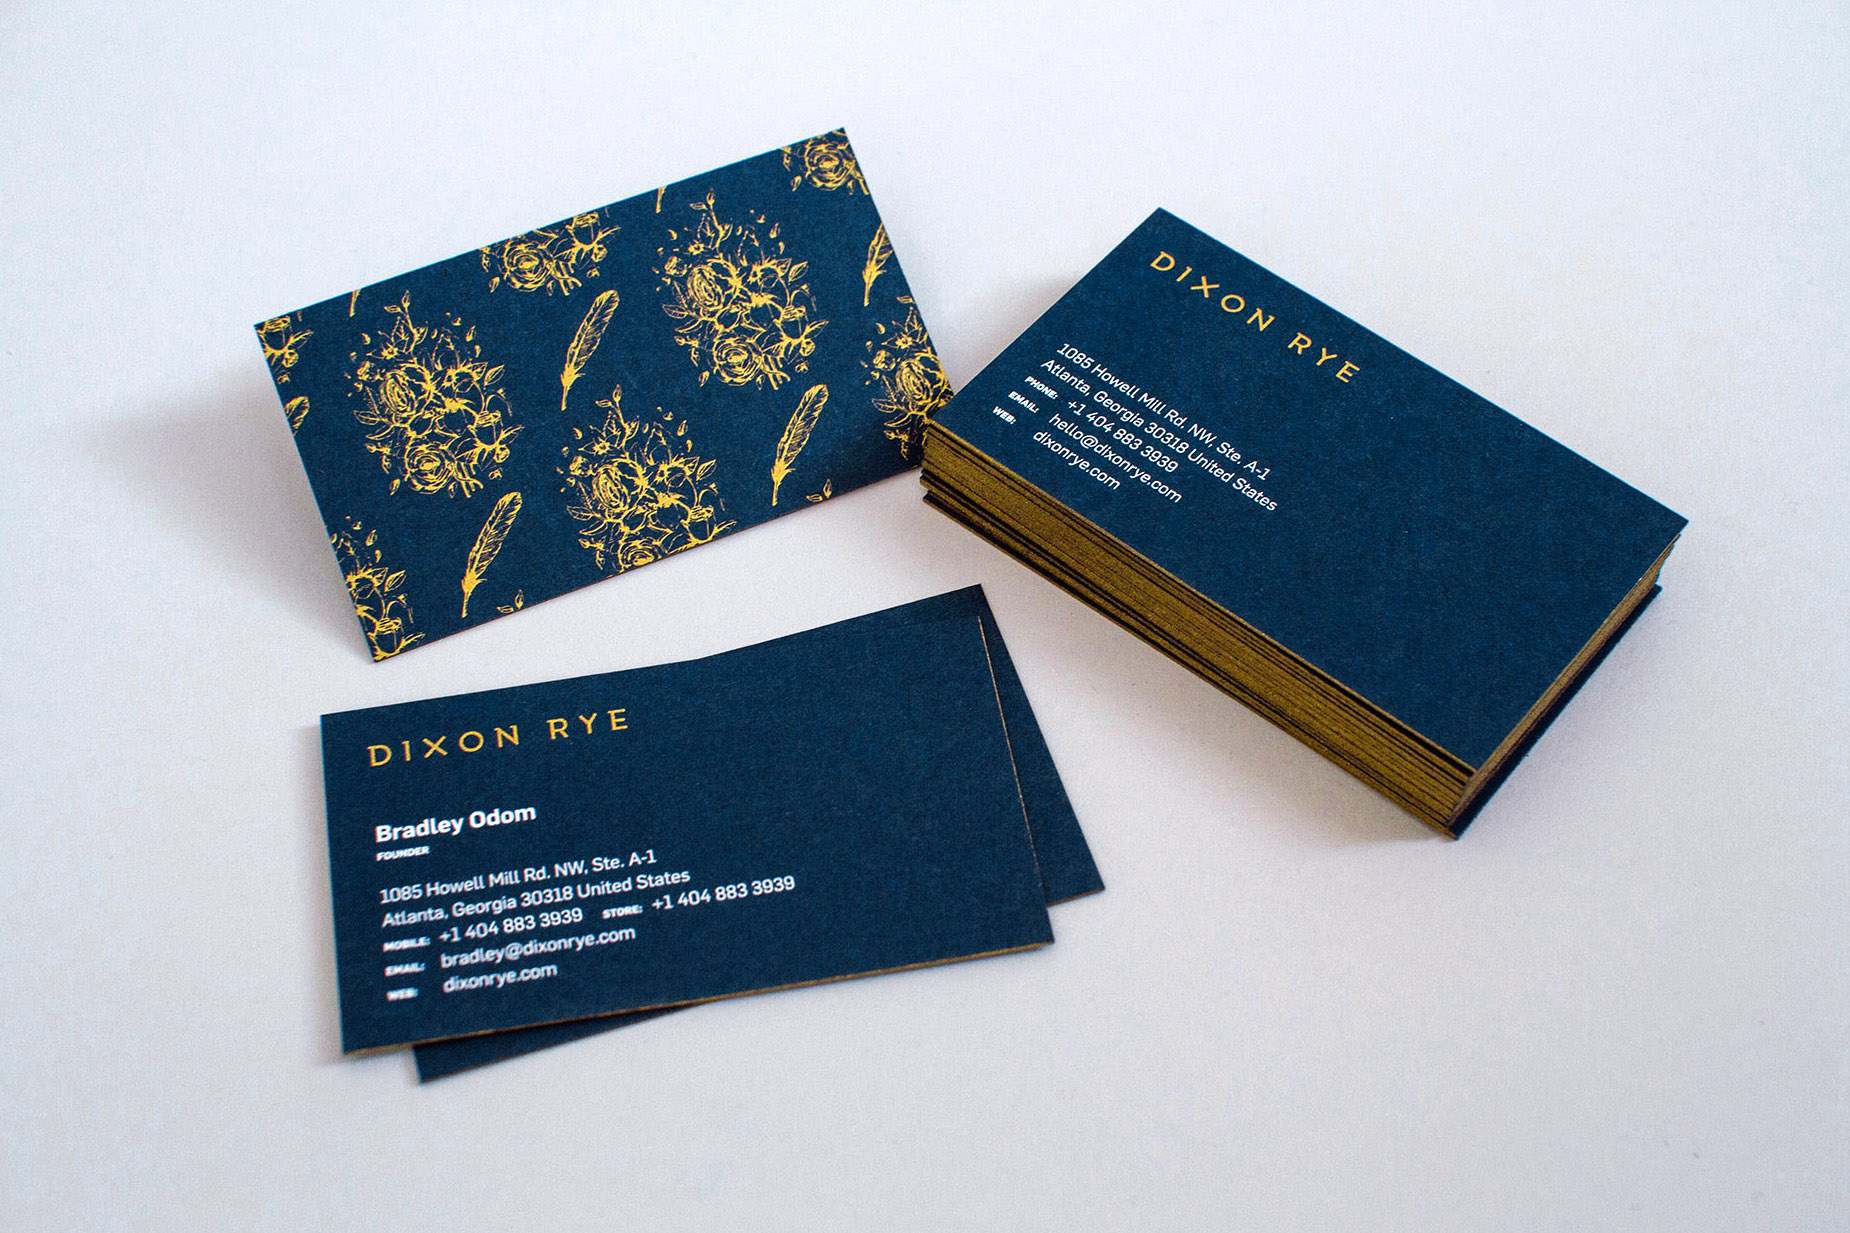 Thick French Paper Nightshift Blue navy business cards with gold edge painted sides, and the Dixon Rye logo silk screen printed in a metallic gold Pantone.